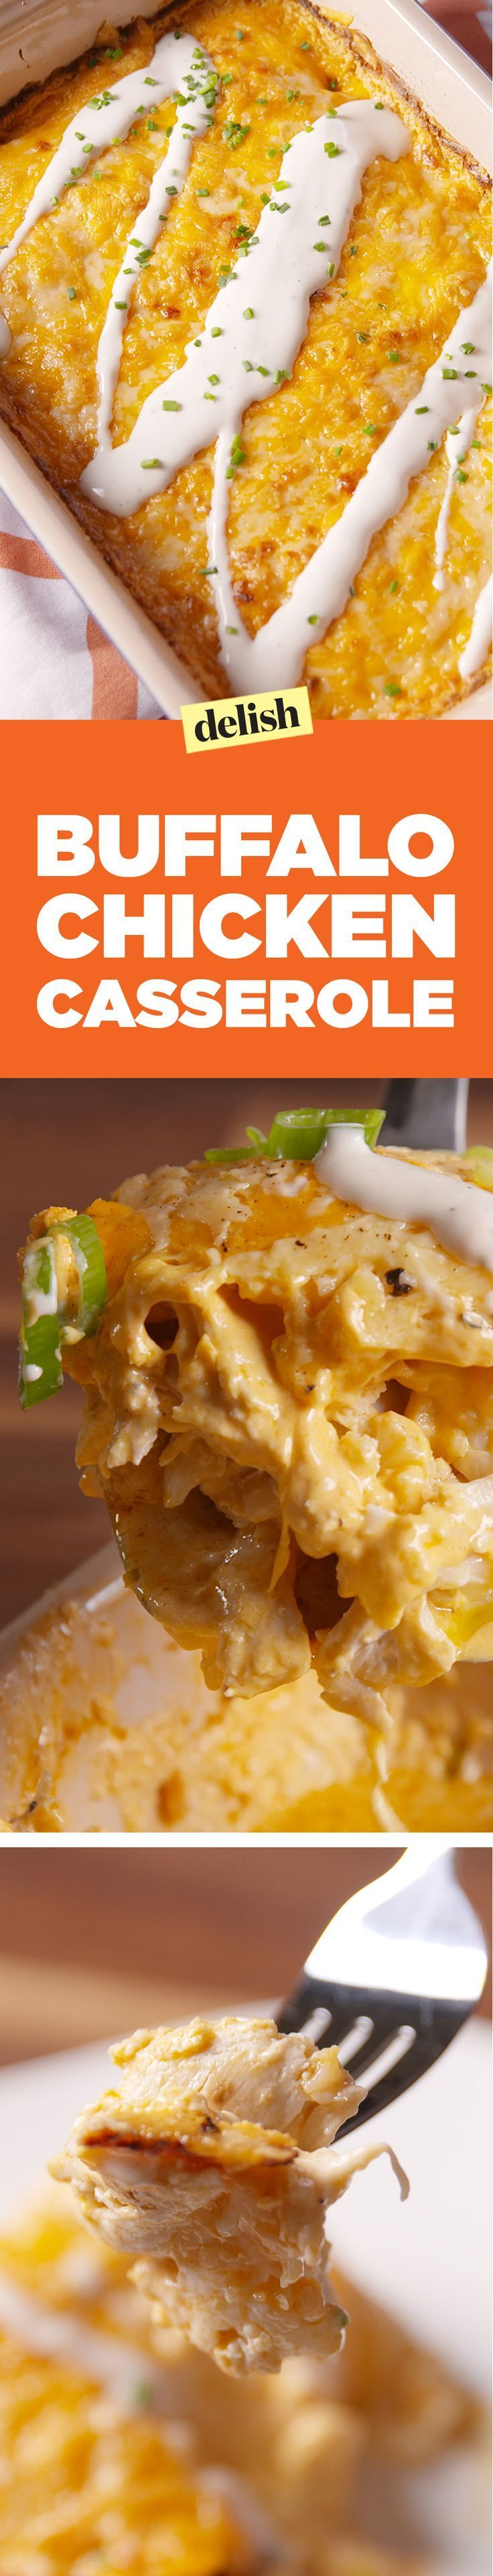 Buffalo chicken casserole will be your favorite low-carb dinner of fall. Get the recipe on http://Delish.com.